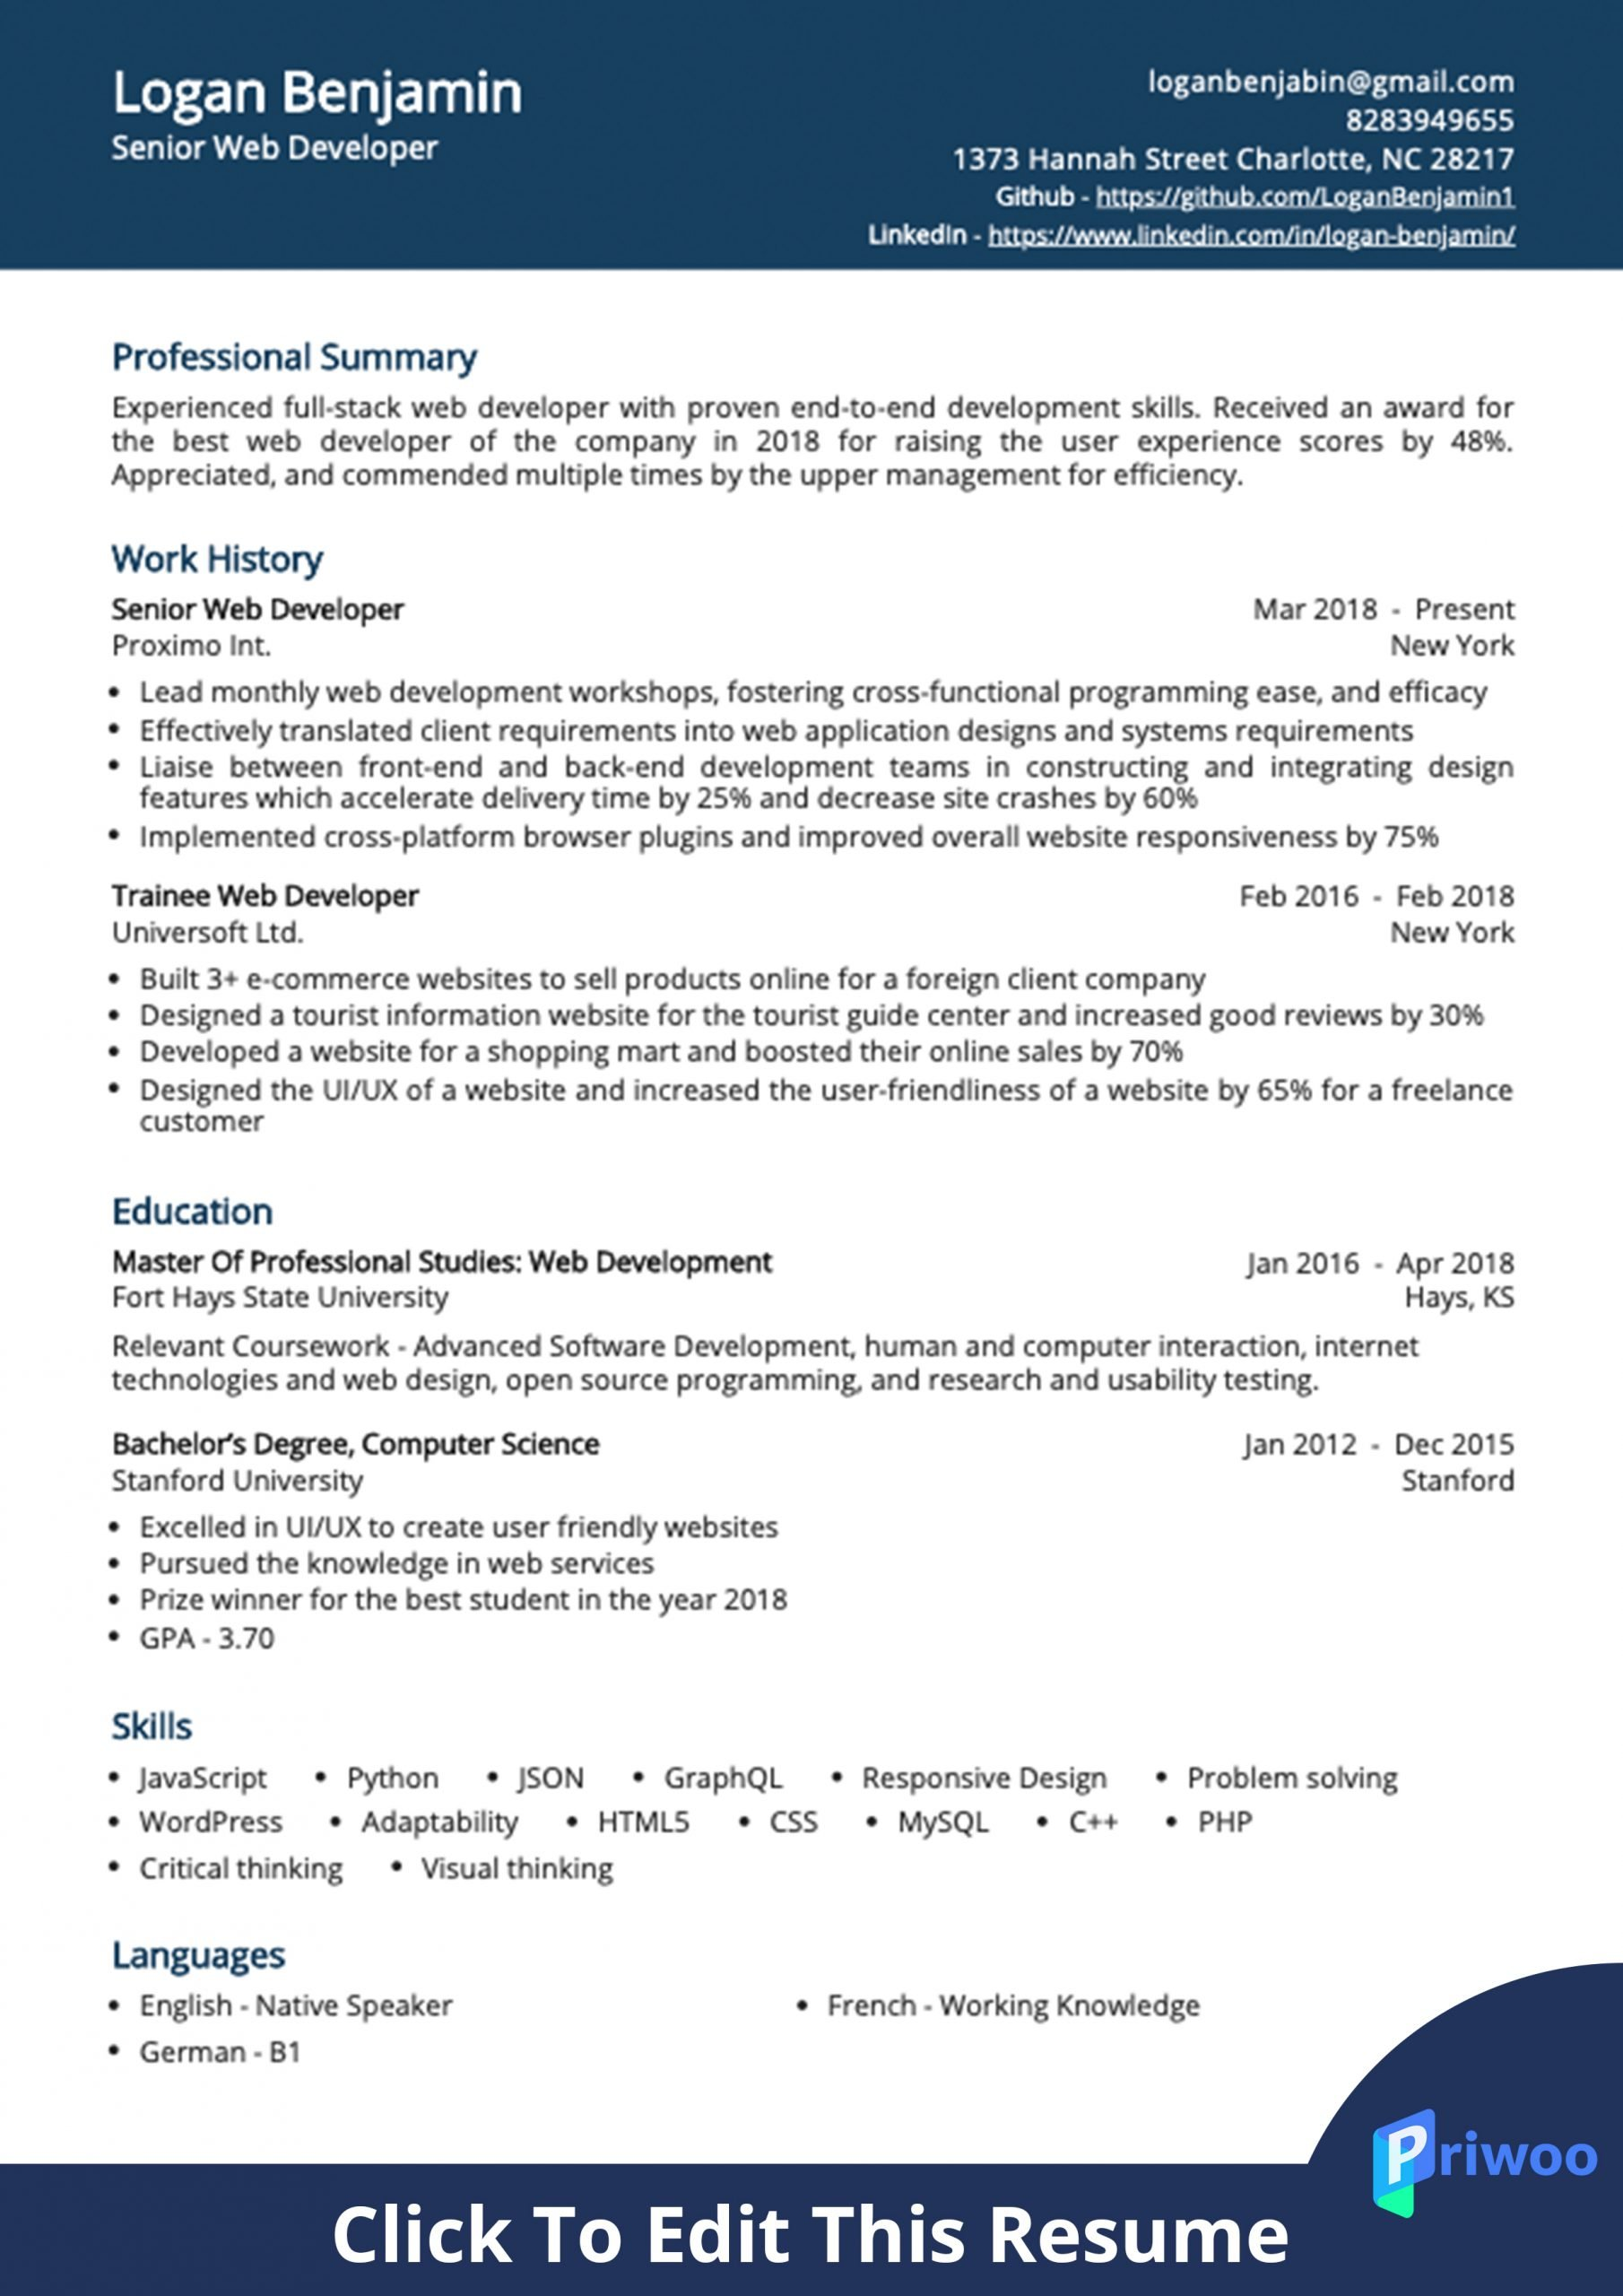 web developer resume example best action verbs skills priwoo soap services scaled creddle Resume Soap Web Services Developer Resume